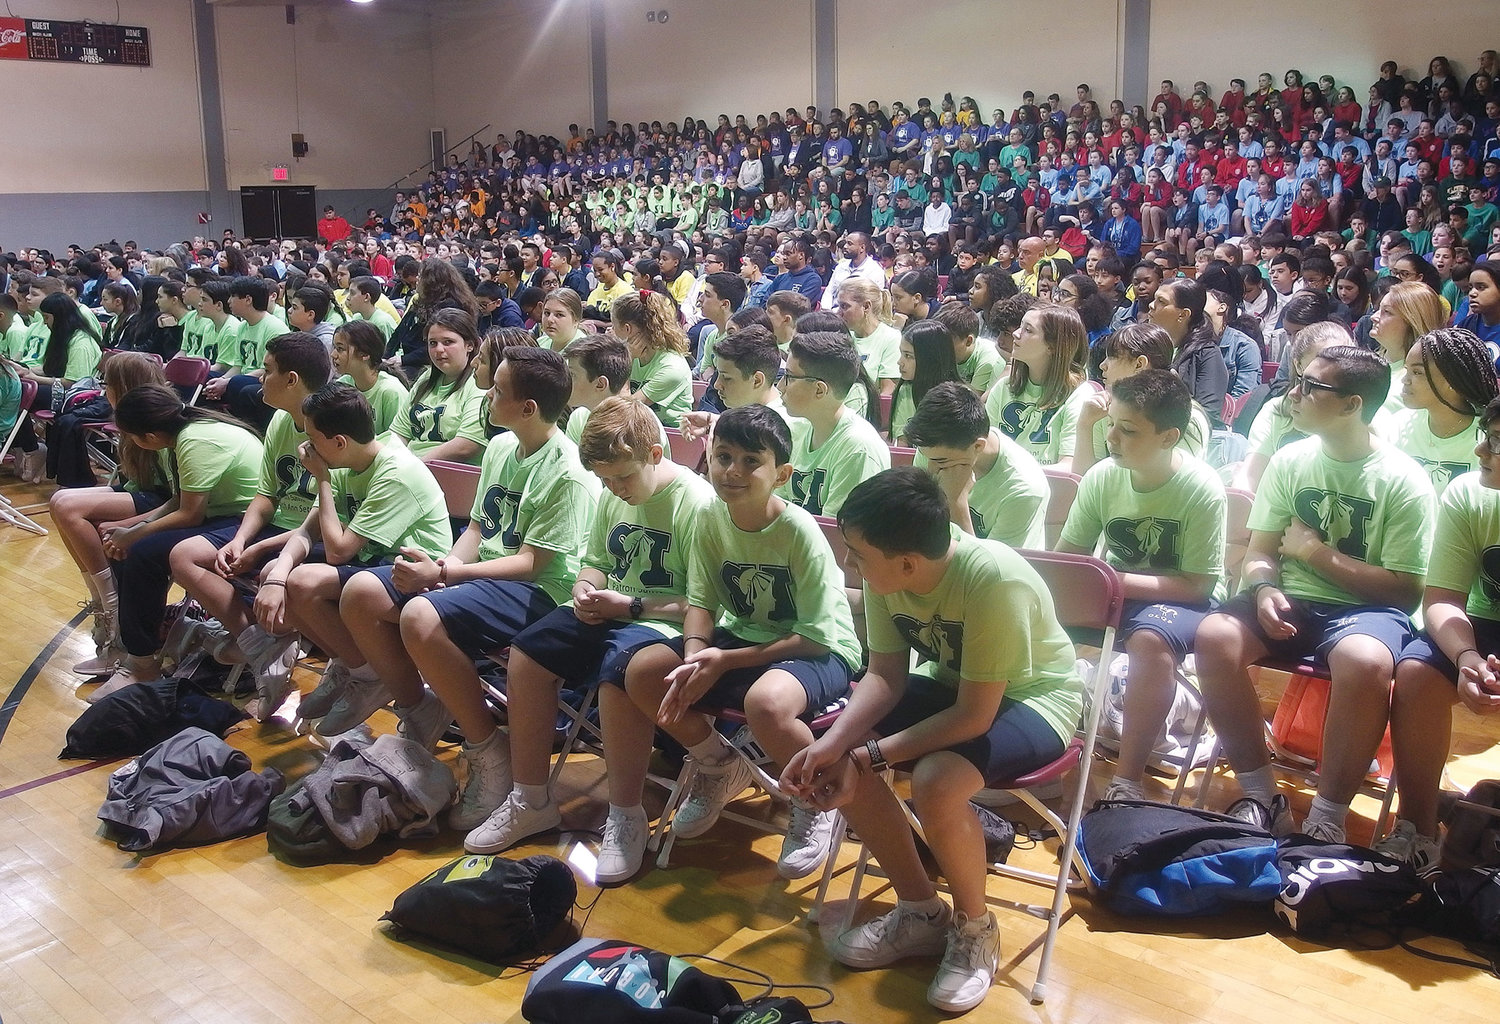 Nearly 1,000 students and faculty from 26 Catholic schools across the archdiocese gather for Mass in the gymnasium of St. Joseph's Seminary, Dunwoodie, May 8. Fun and games, from tug-of-war to three-legged races, followed outdoors on the seminary grounds at the annual archdiocesan Regional Field Day.